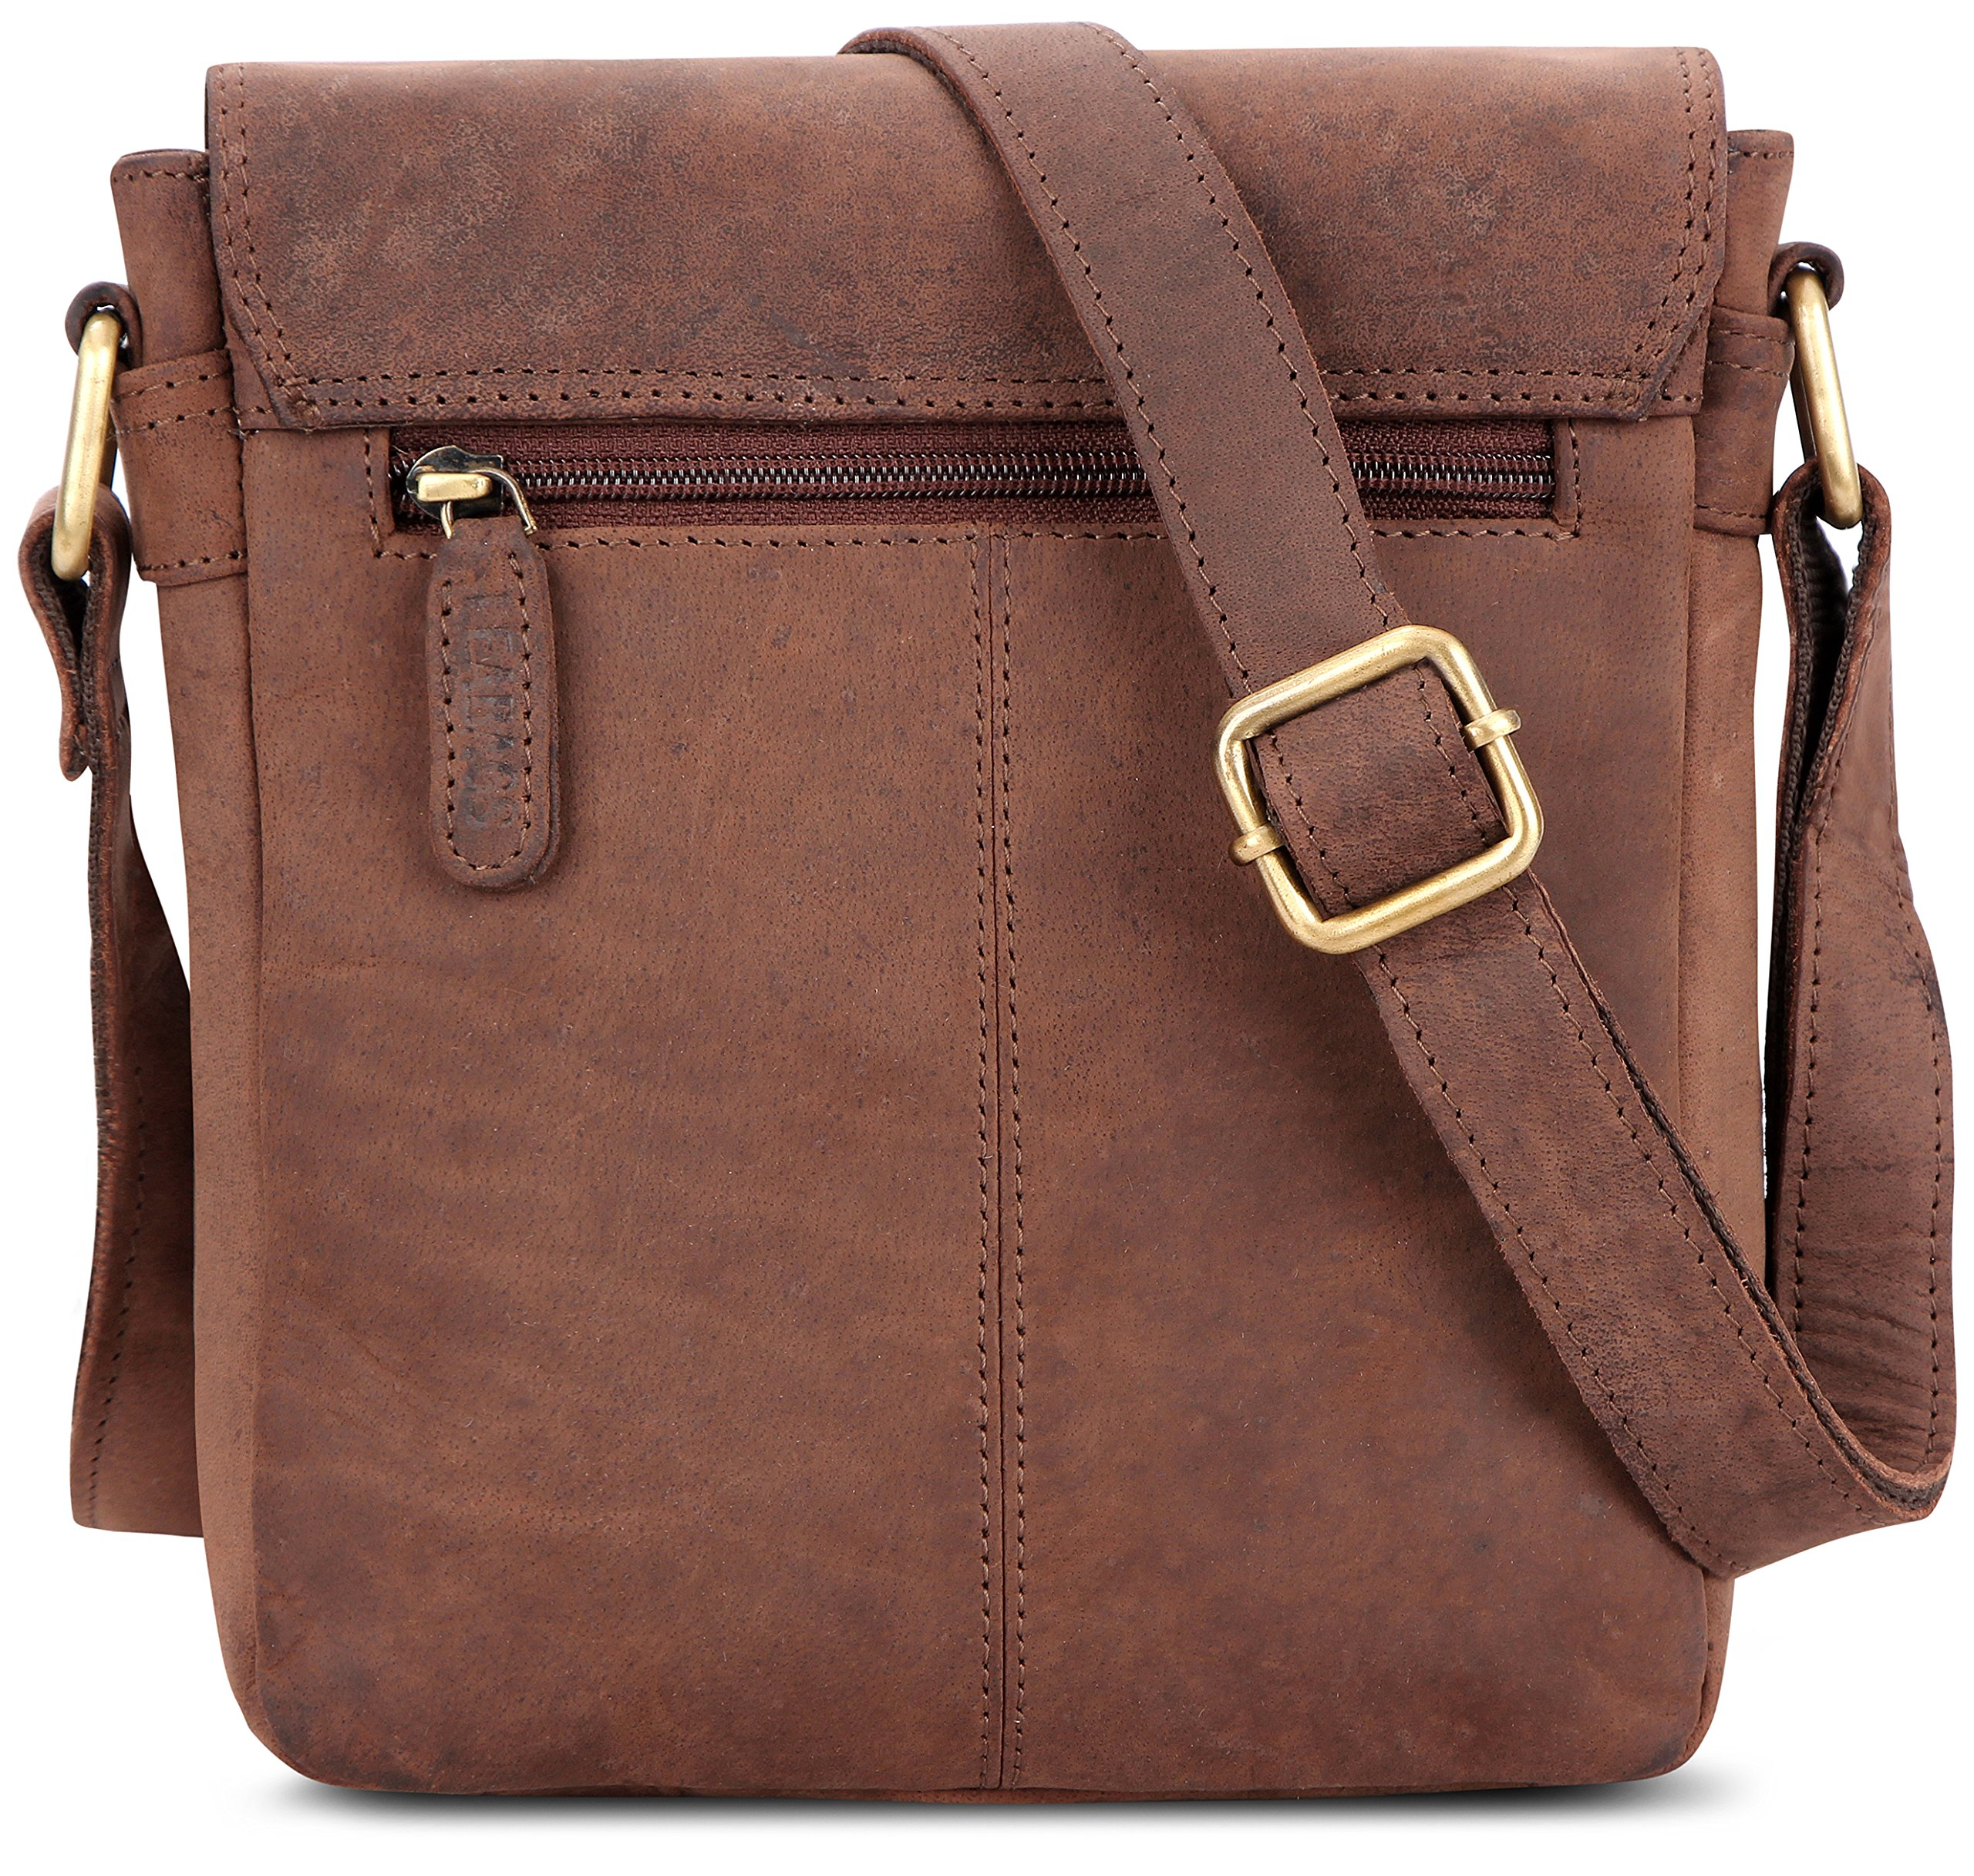 LEABAGS Weston genuine buffalo leather city bag in vintage style - Nutmeg by LEABAGS (Image #3)